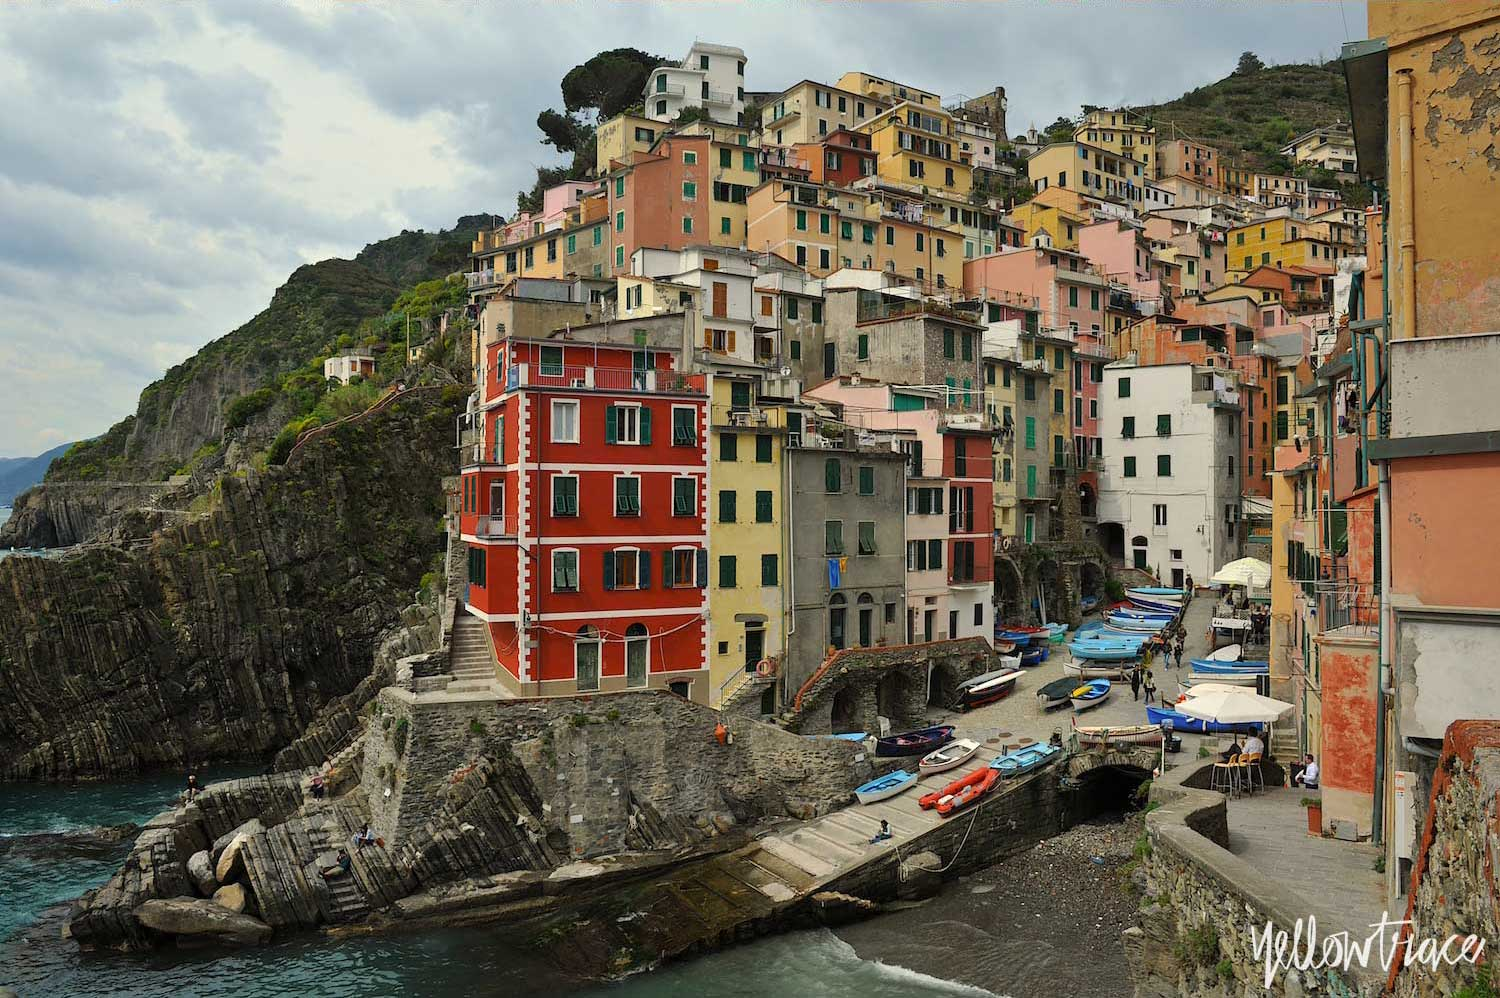 #YellowtraceTravels to Cinque Terre, Riomaggiore / Photo © Nick Hughes